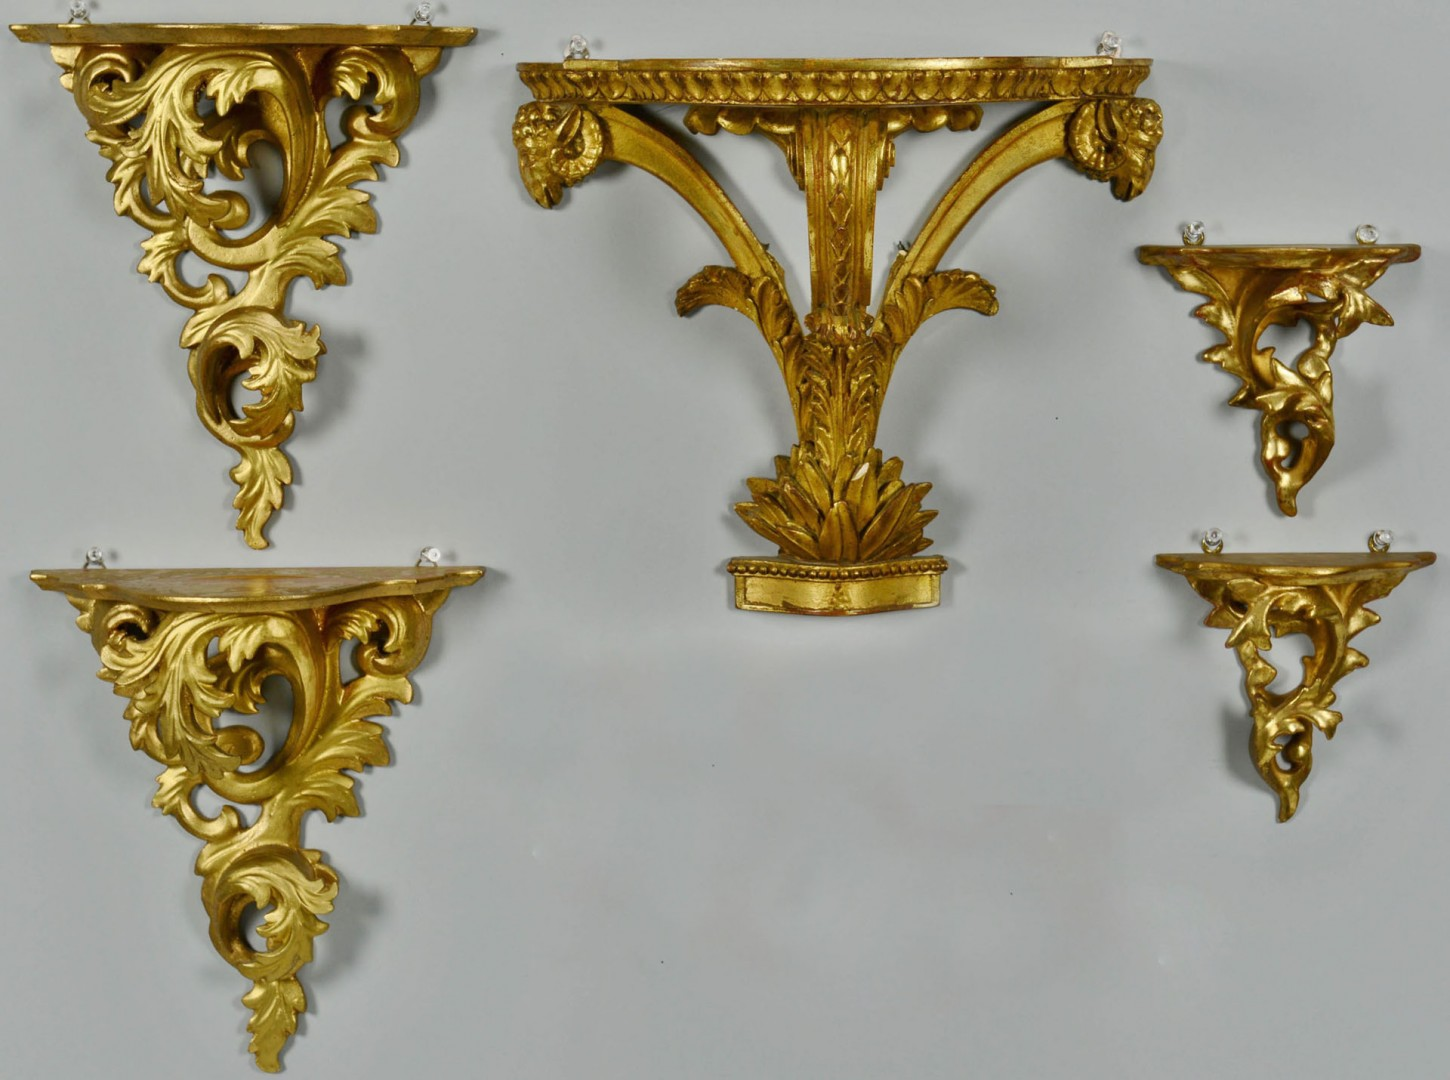 Lot 419: Grouping of 5 Gilt Sconces